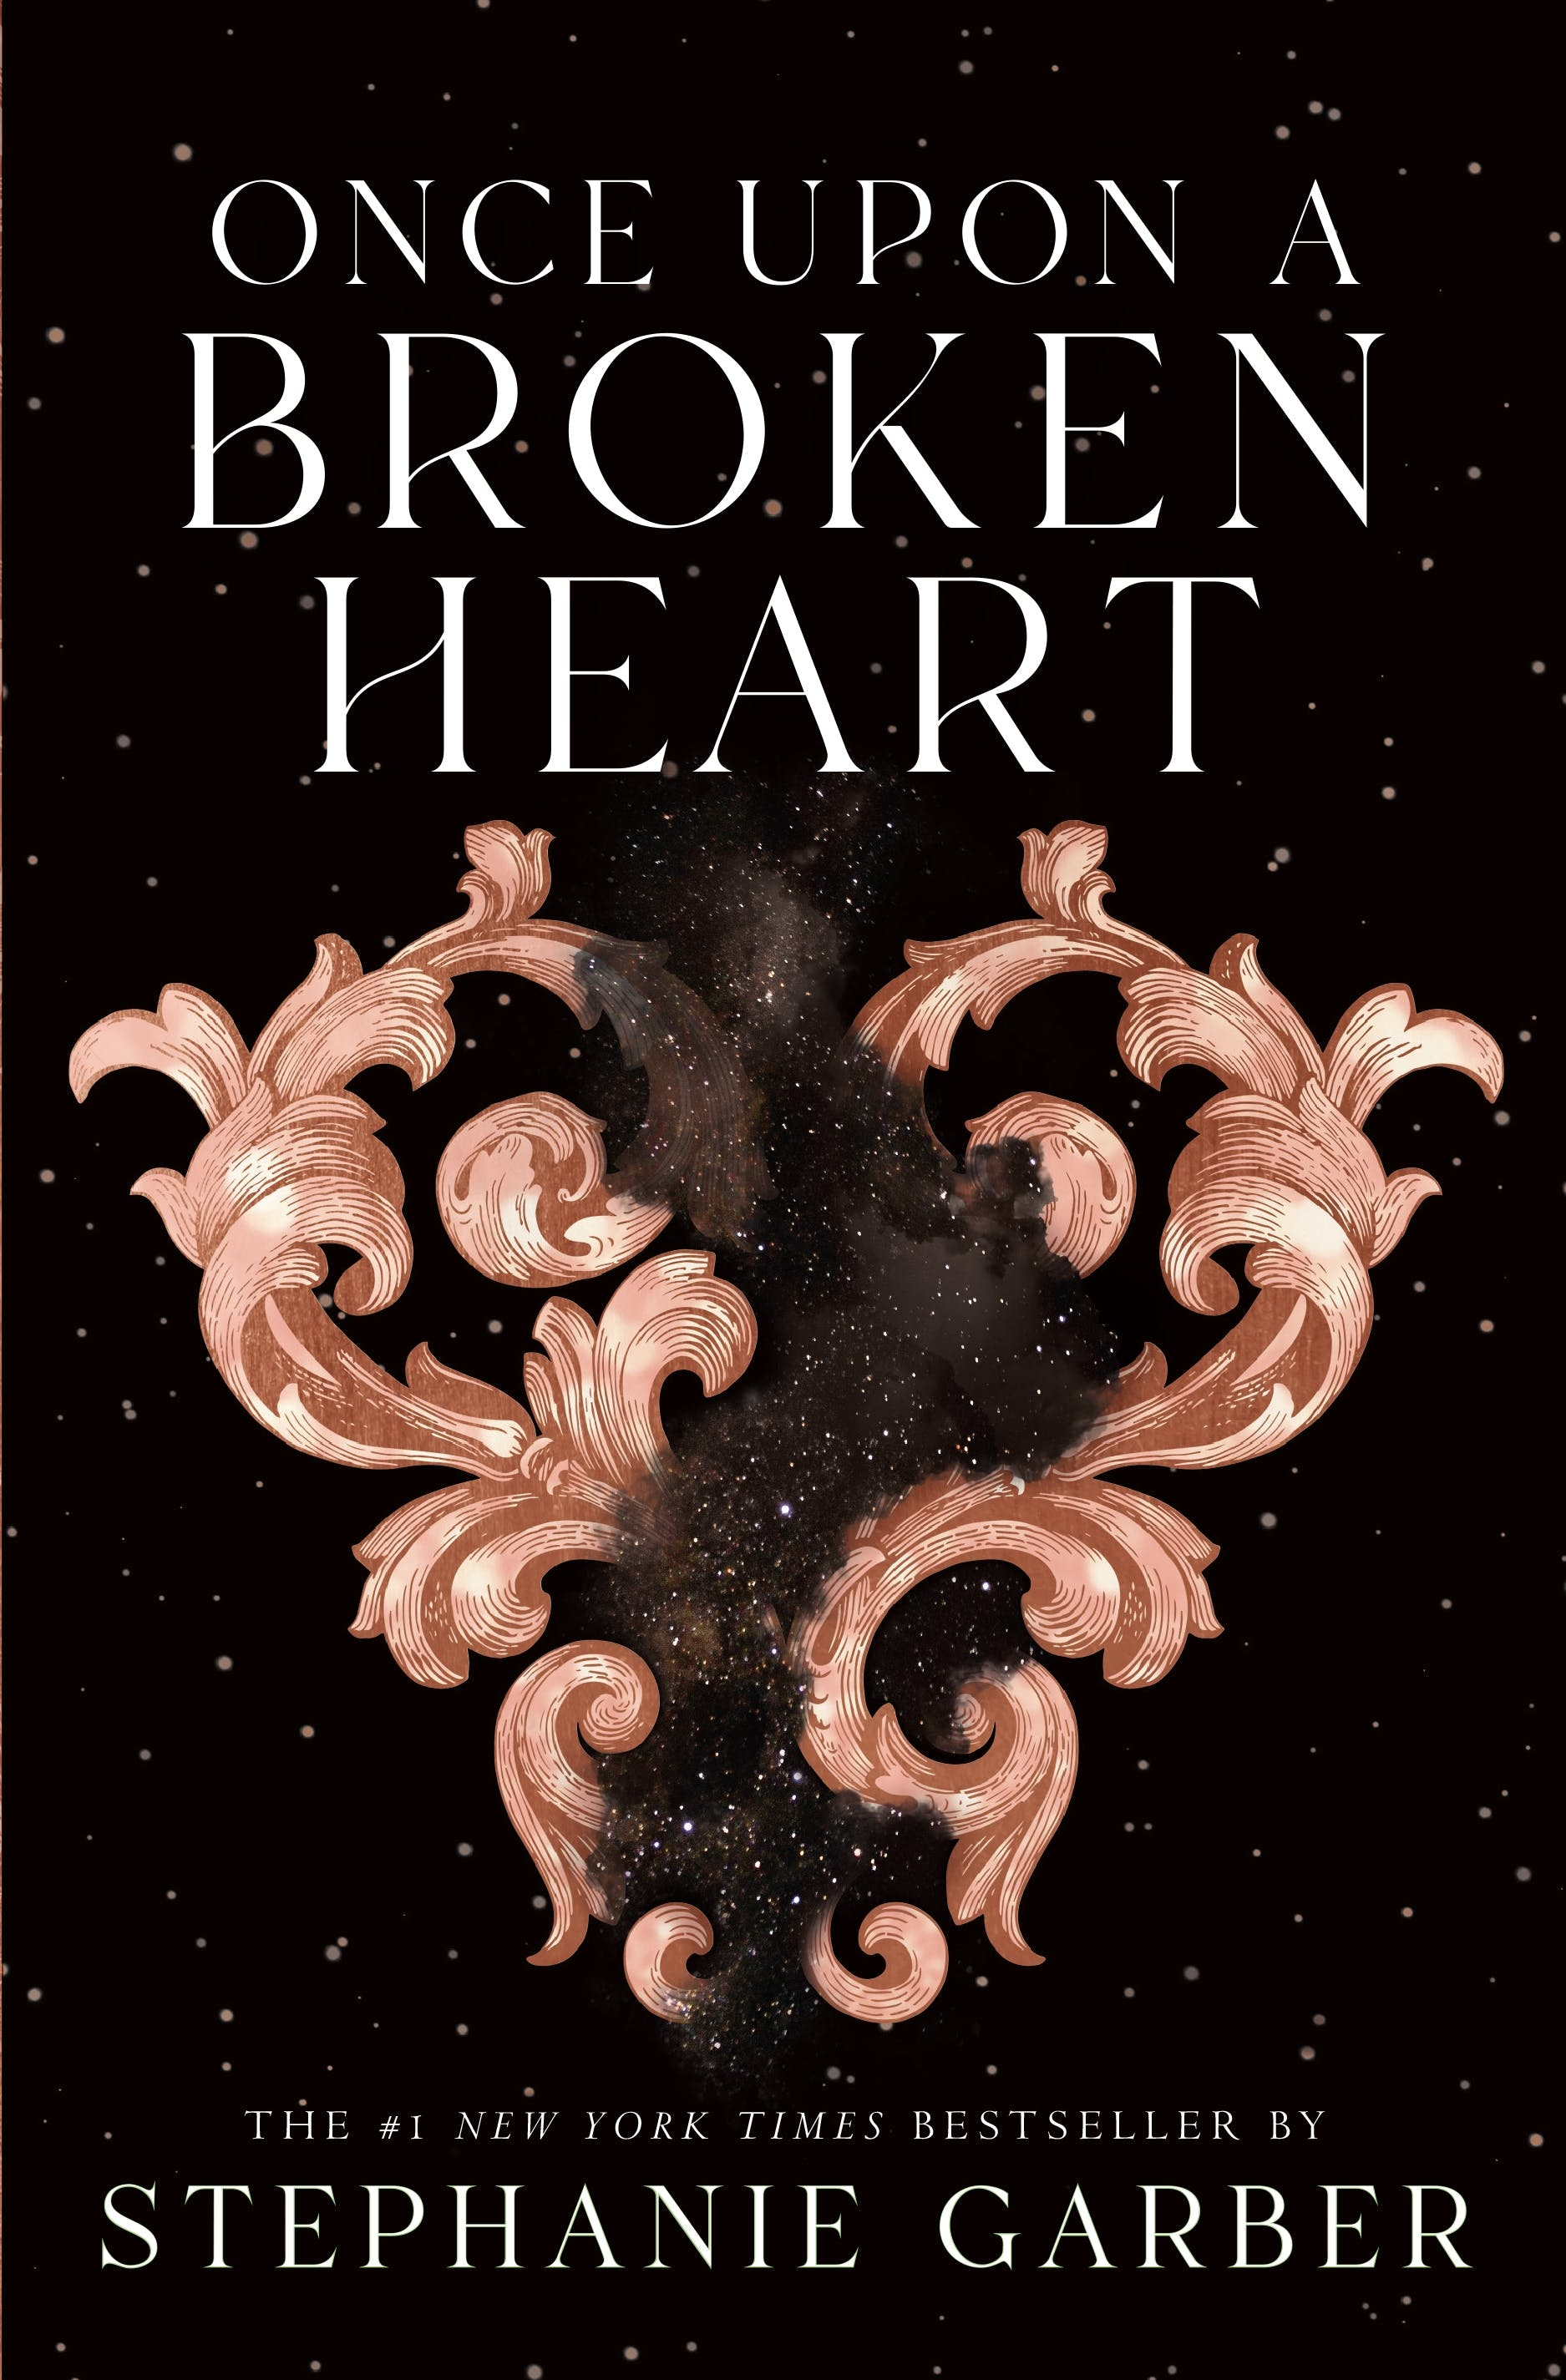 Image of Once Upon a Broken Heart